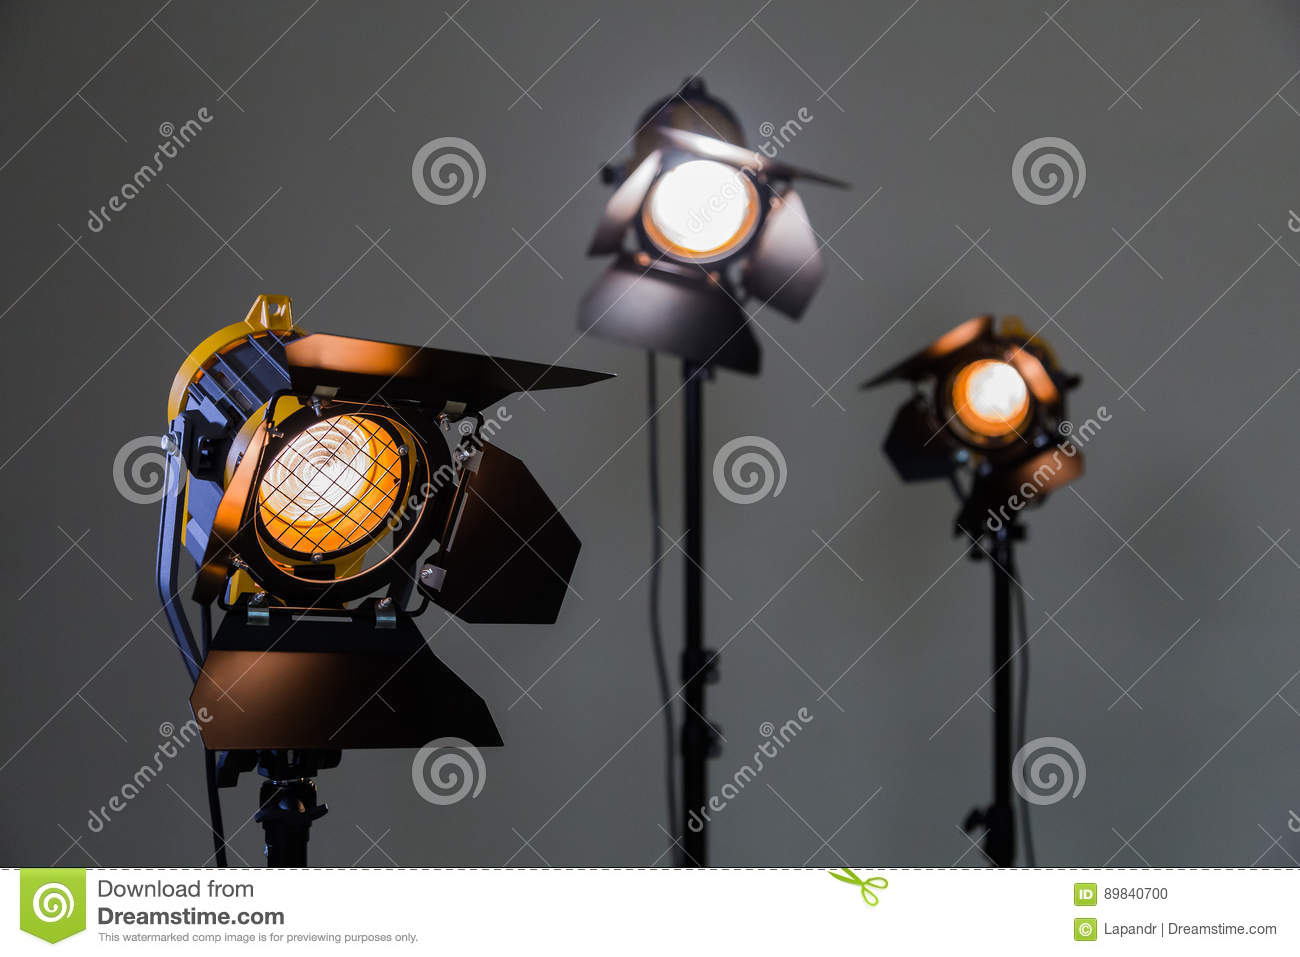 Three halogen spotlights with Fresnel lenses on a grey background. Photographing and filming in the interior